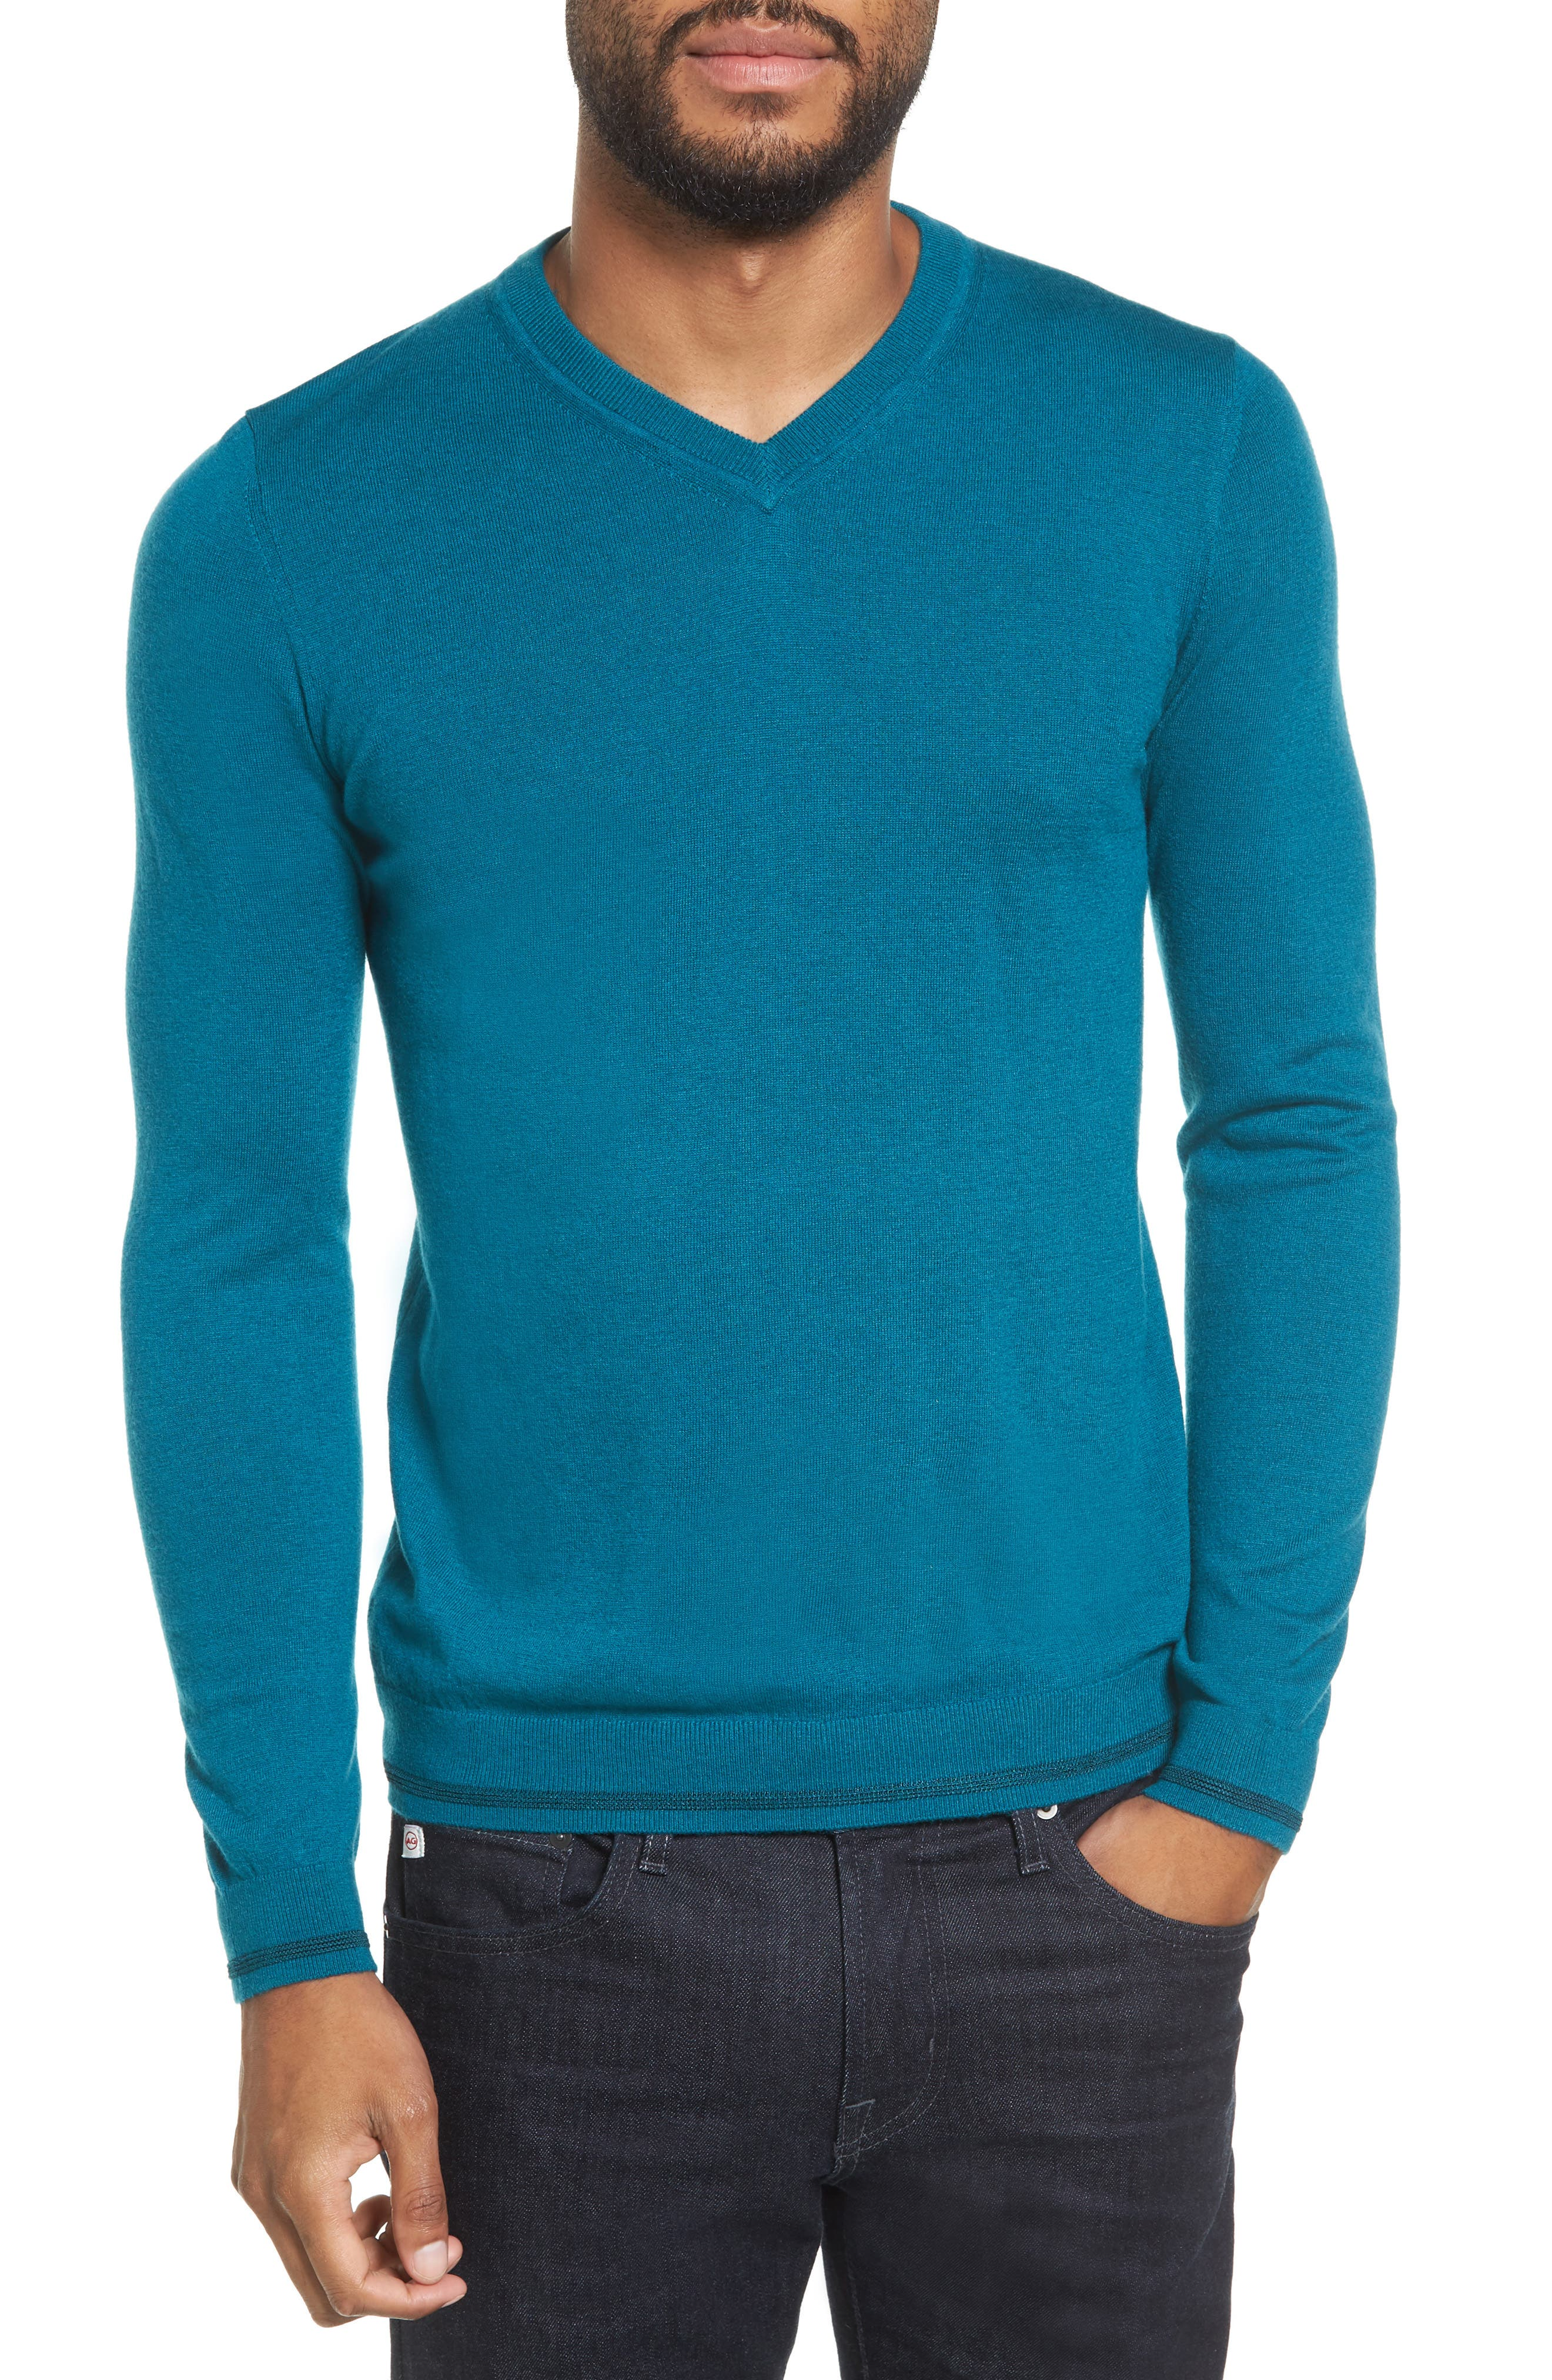 Main Image - Ted Baker London V-Neck Sweater